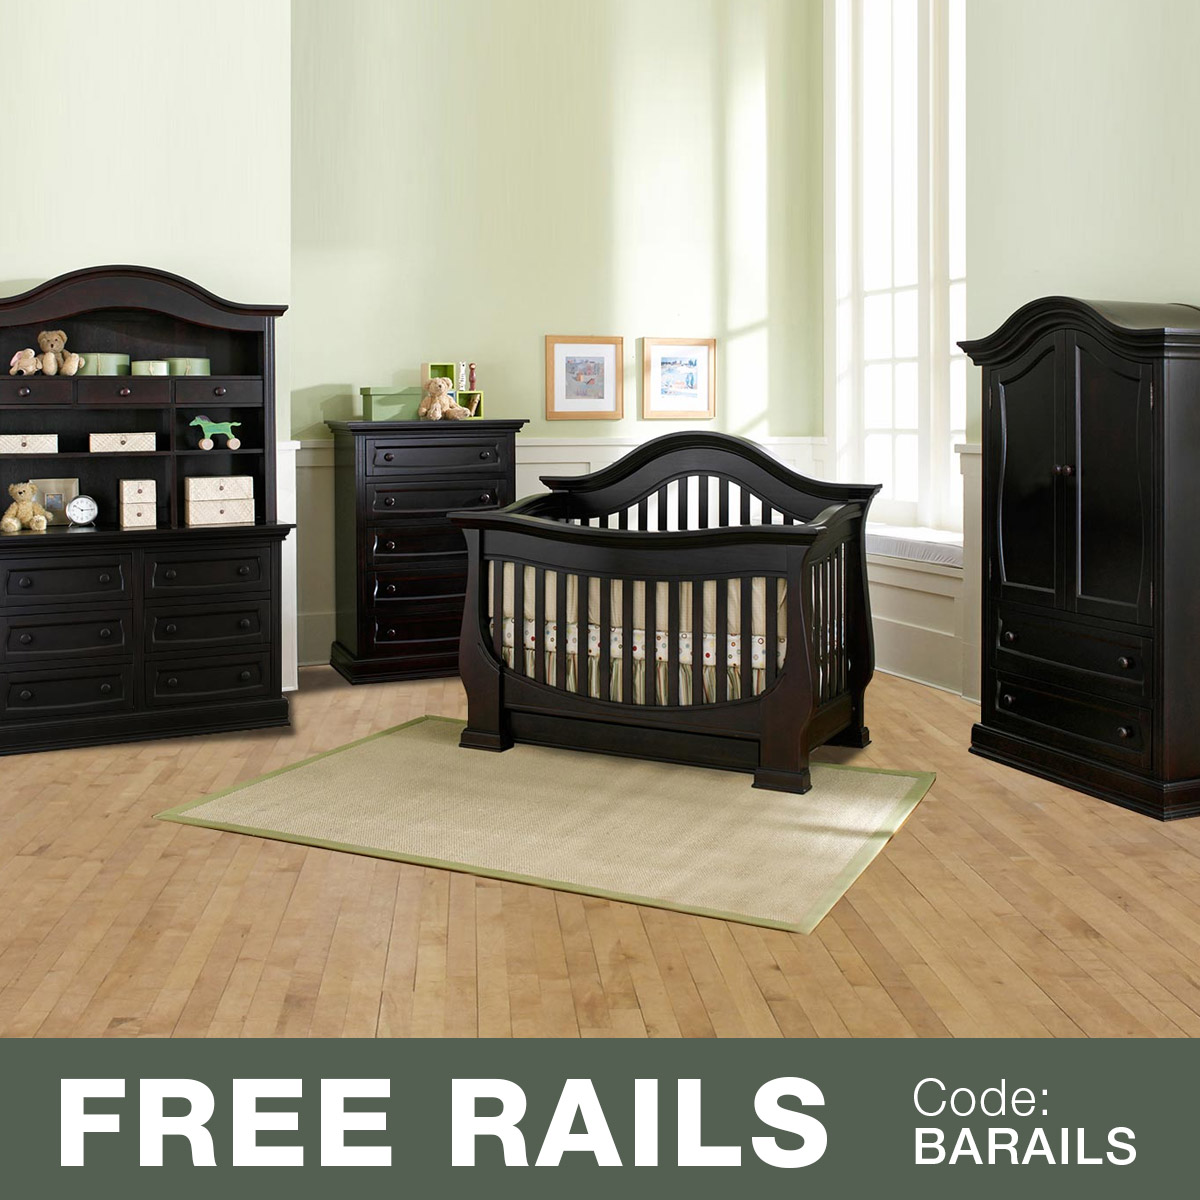 Baby Appleseed 5 Piece Nursery Set   Davenport 3 In 1 Convertible Crib,  Double Dresser With Hutch, 5 Drawer Tall Dresser And Armoire In Coco FREE  SHIPPING